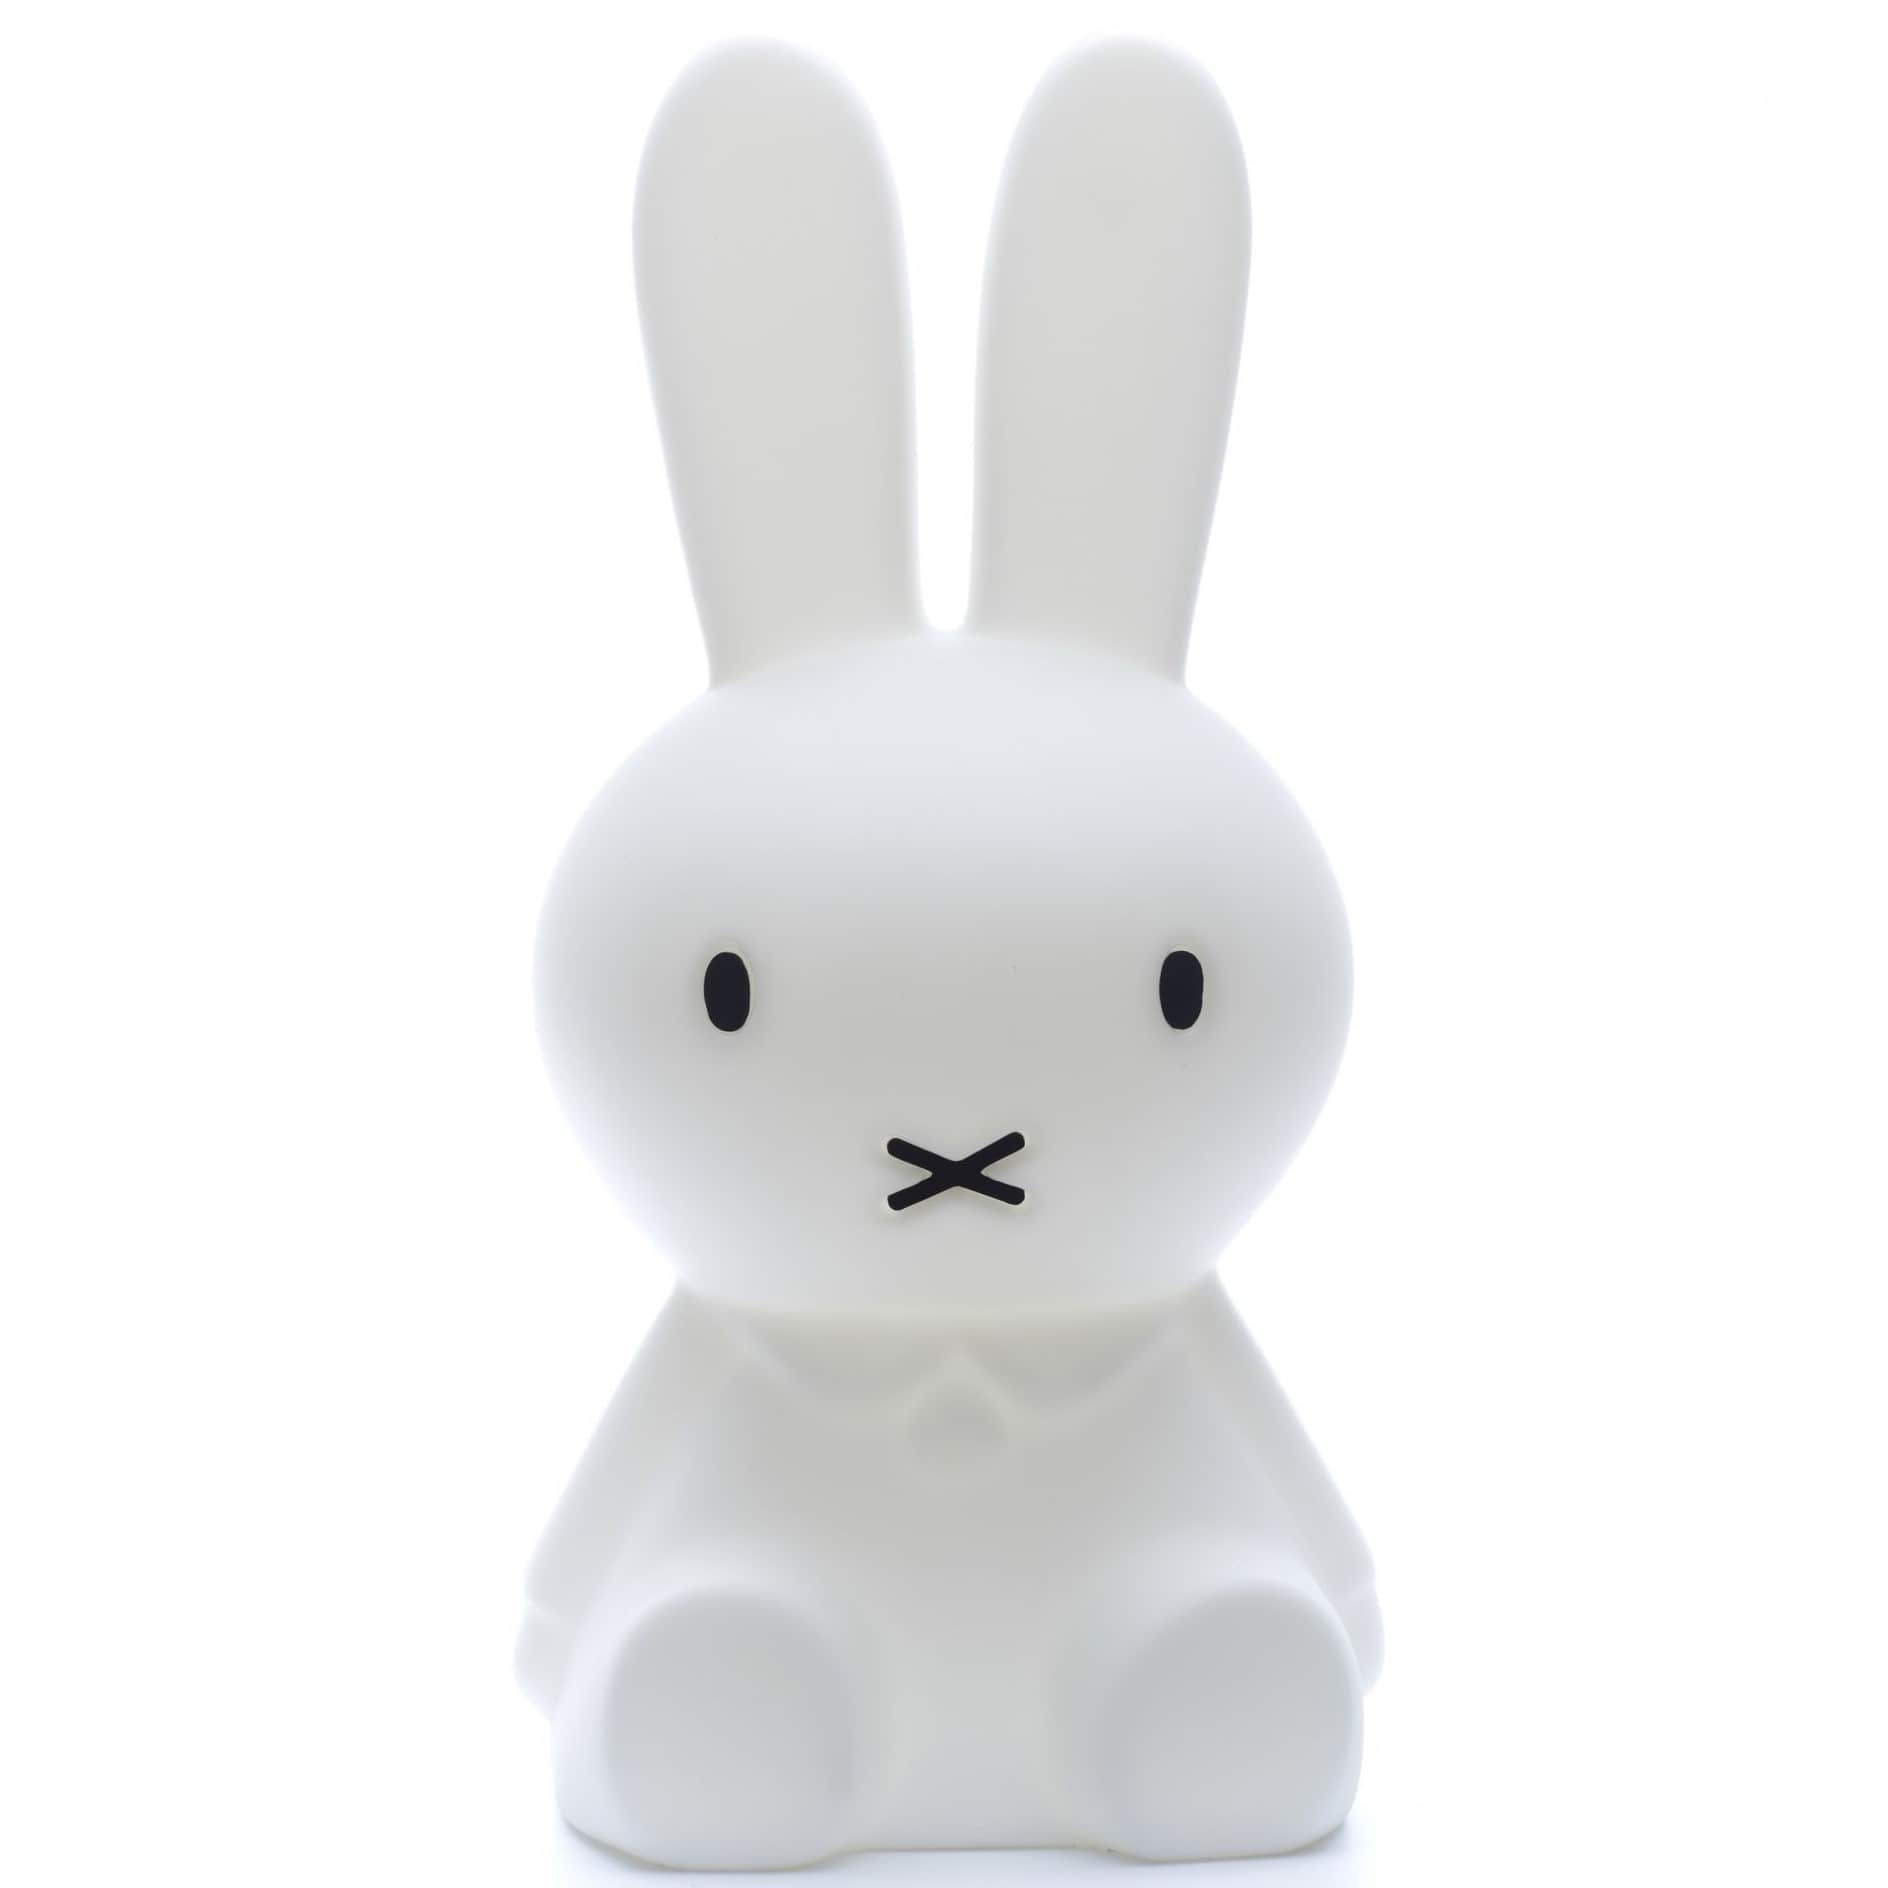 Dětsk 225 Kr 225 Lič 237 Led Lampa Miffy Xl Nordic Day